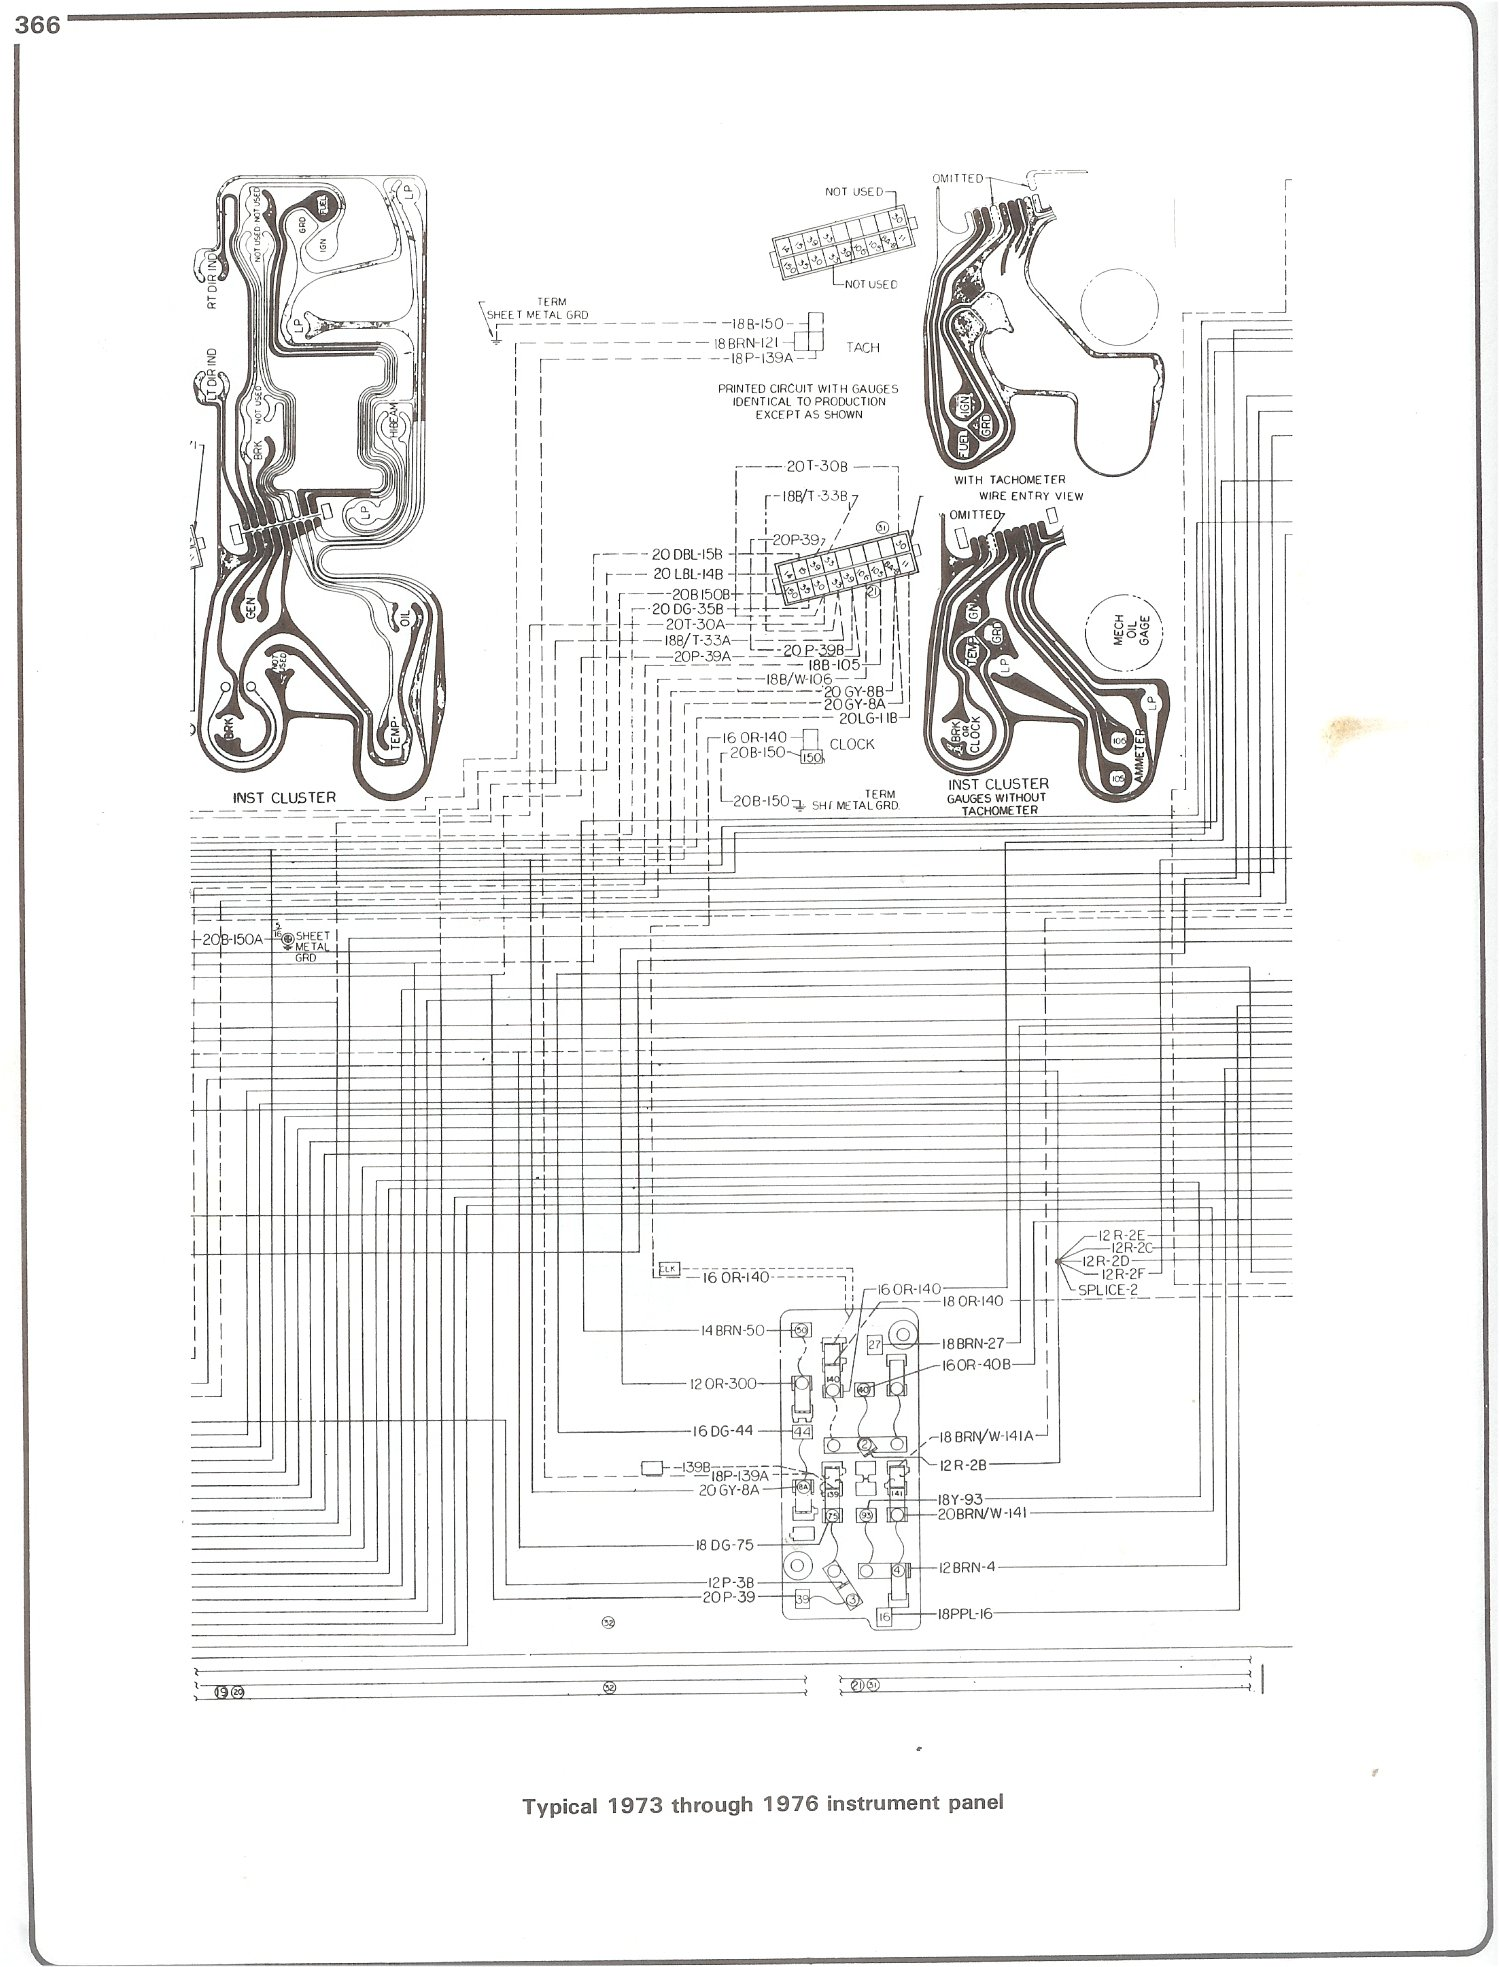 73 76_instrument complete 73 87 wiring diagrams 85 Chevy Truck Wiring Diagram at aneh.co